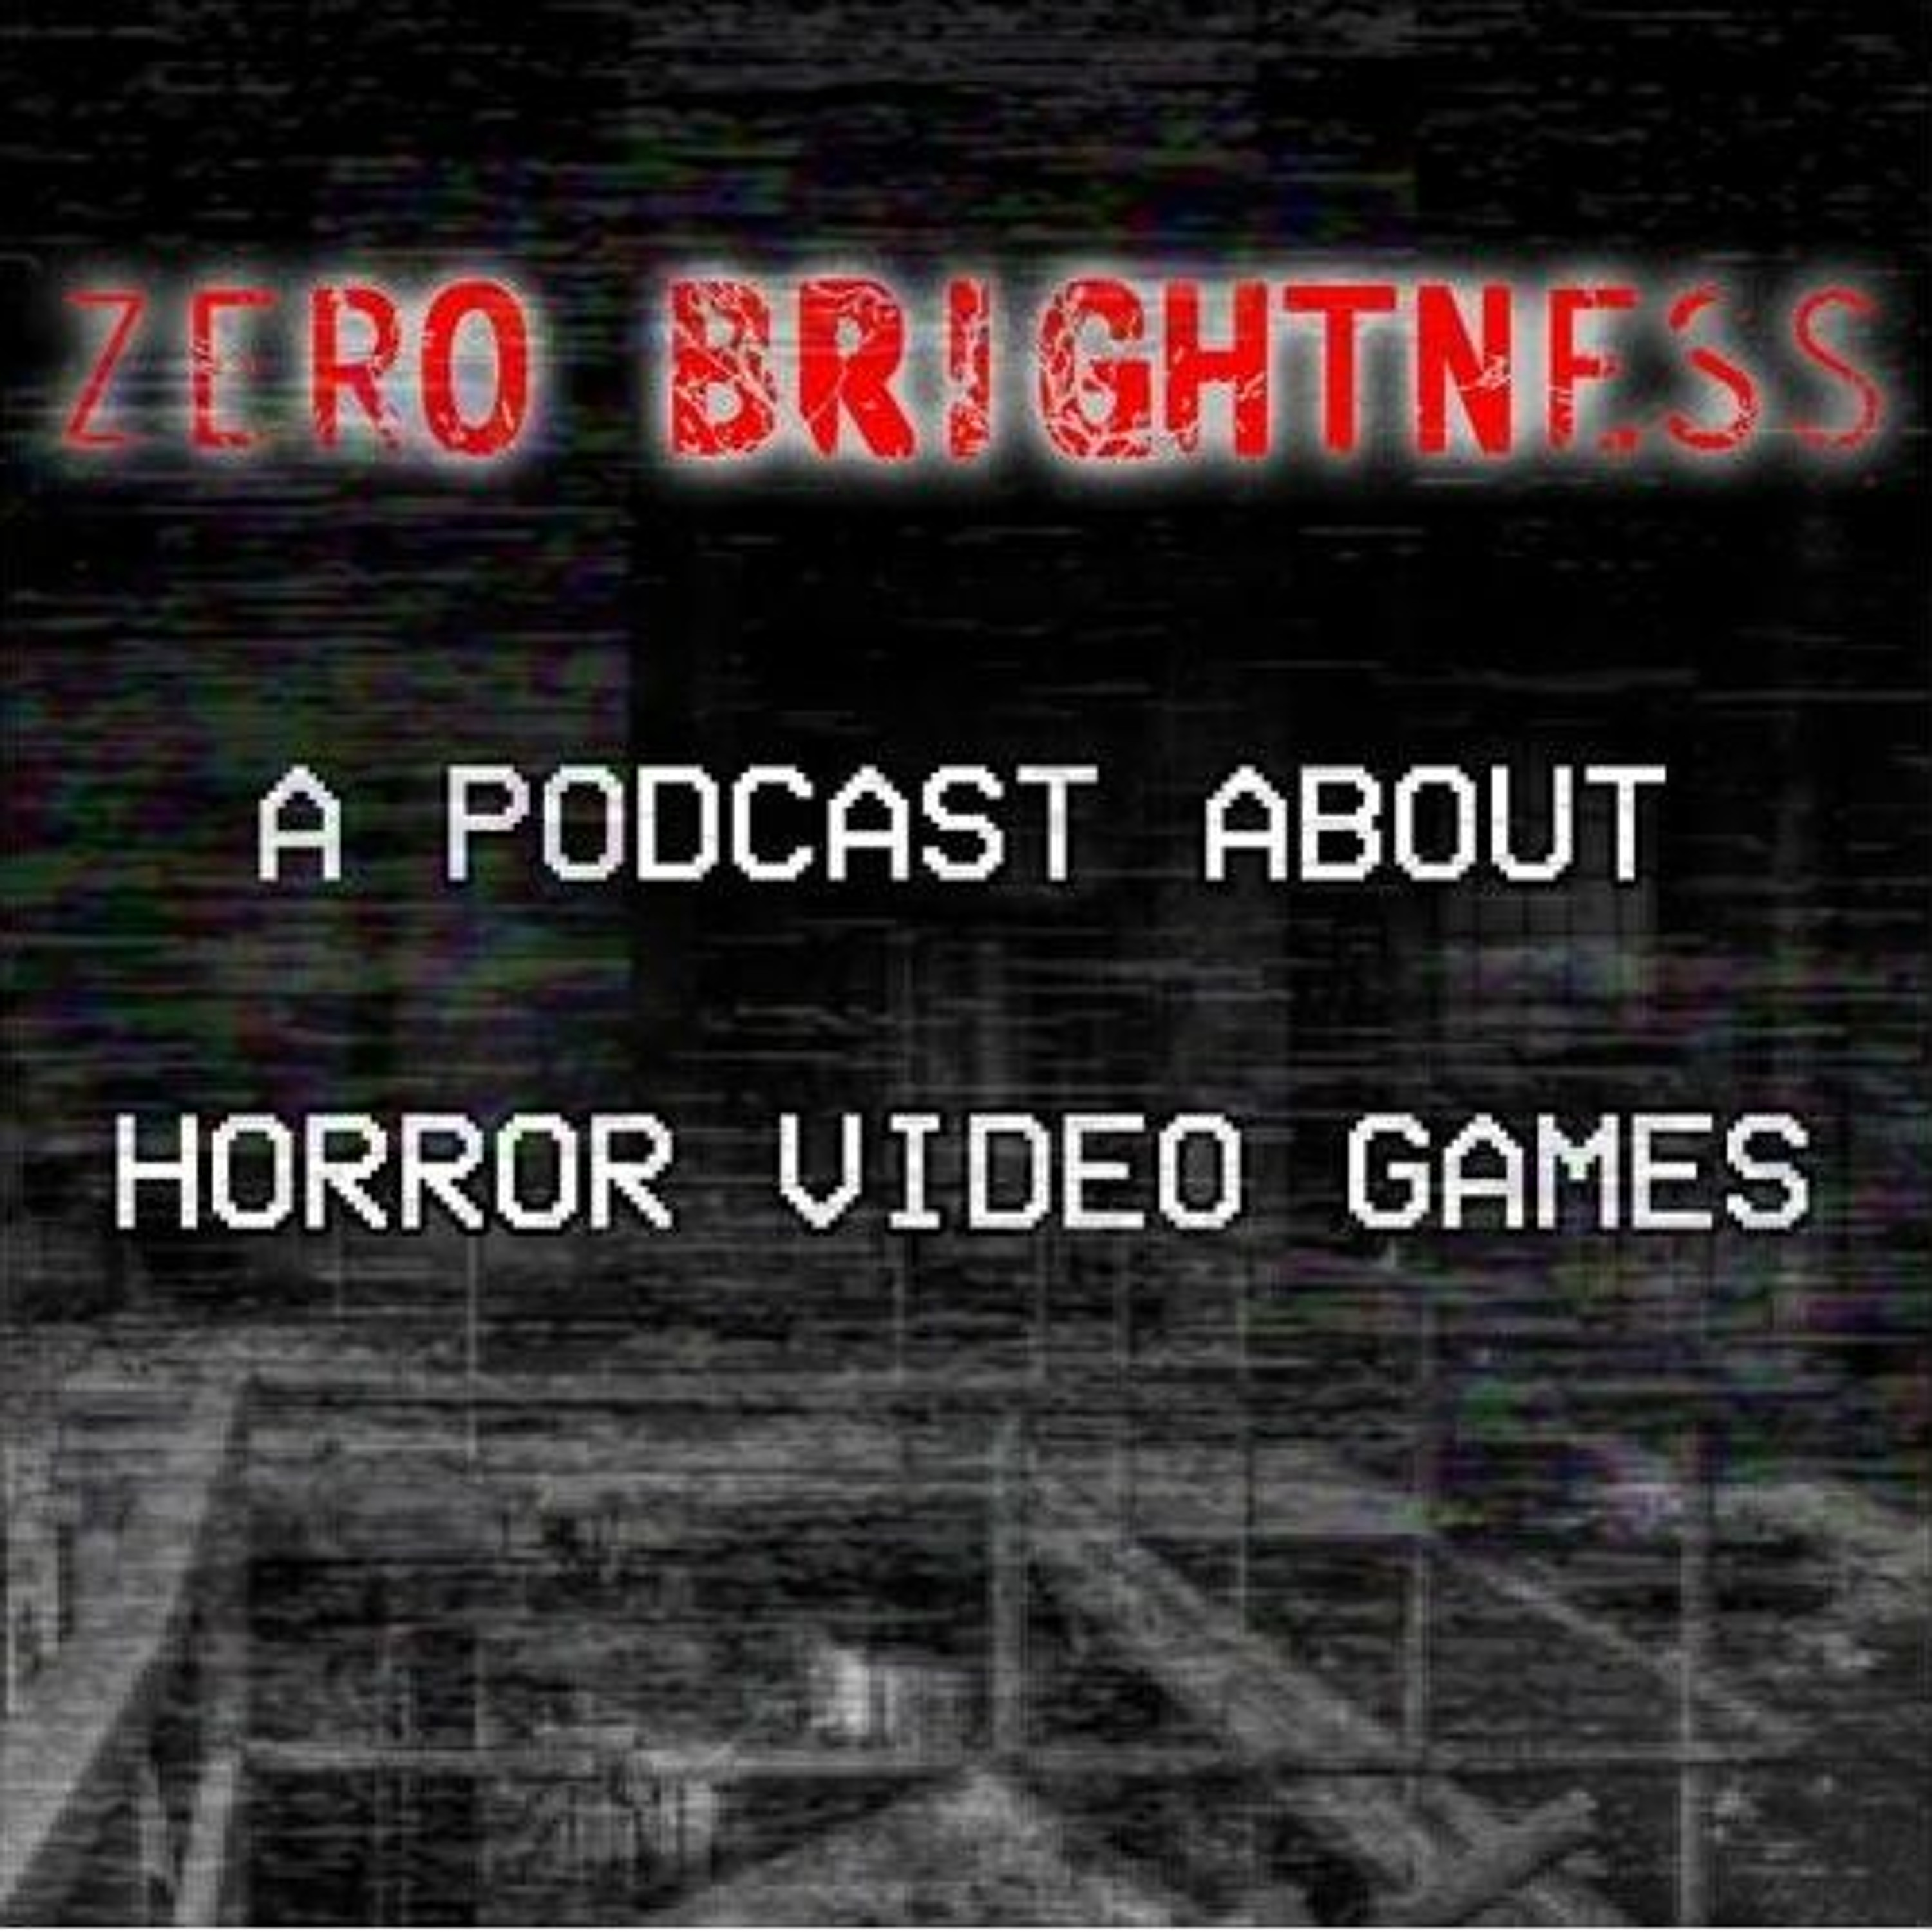 EP. 80: Is it Possible to Ethically Consume Video Games?